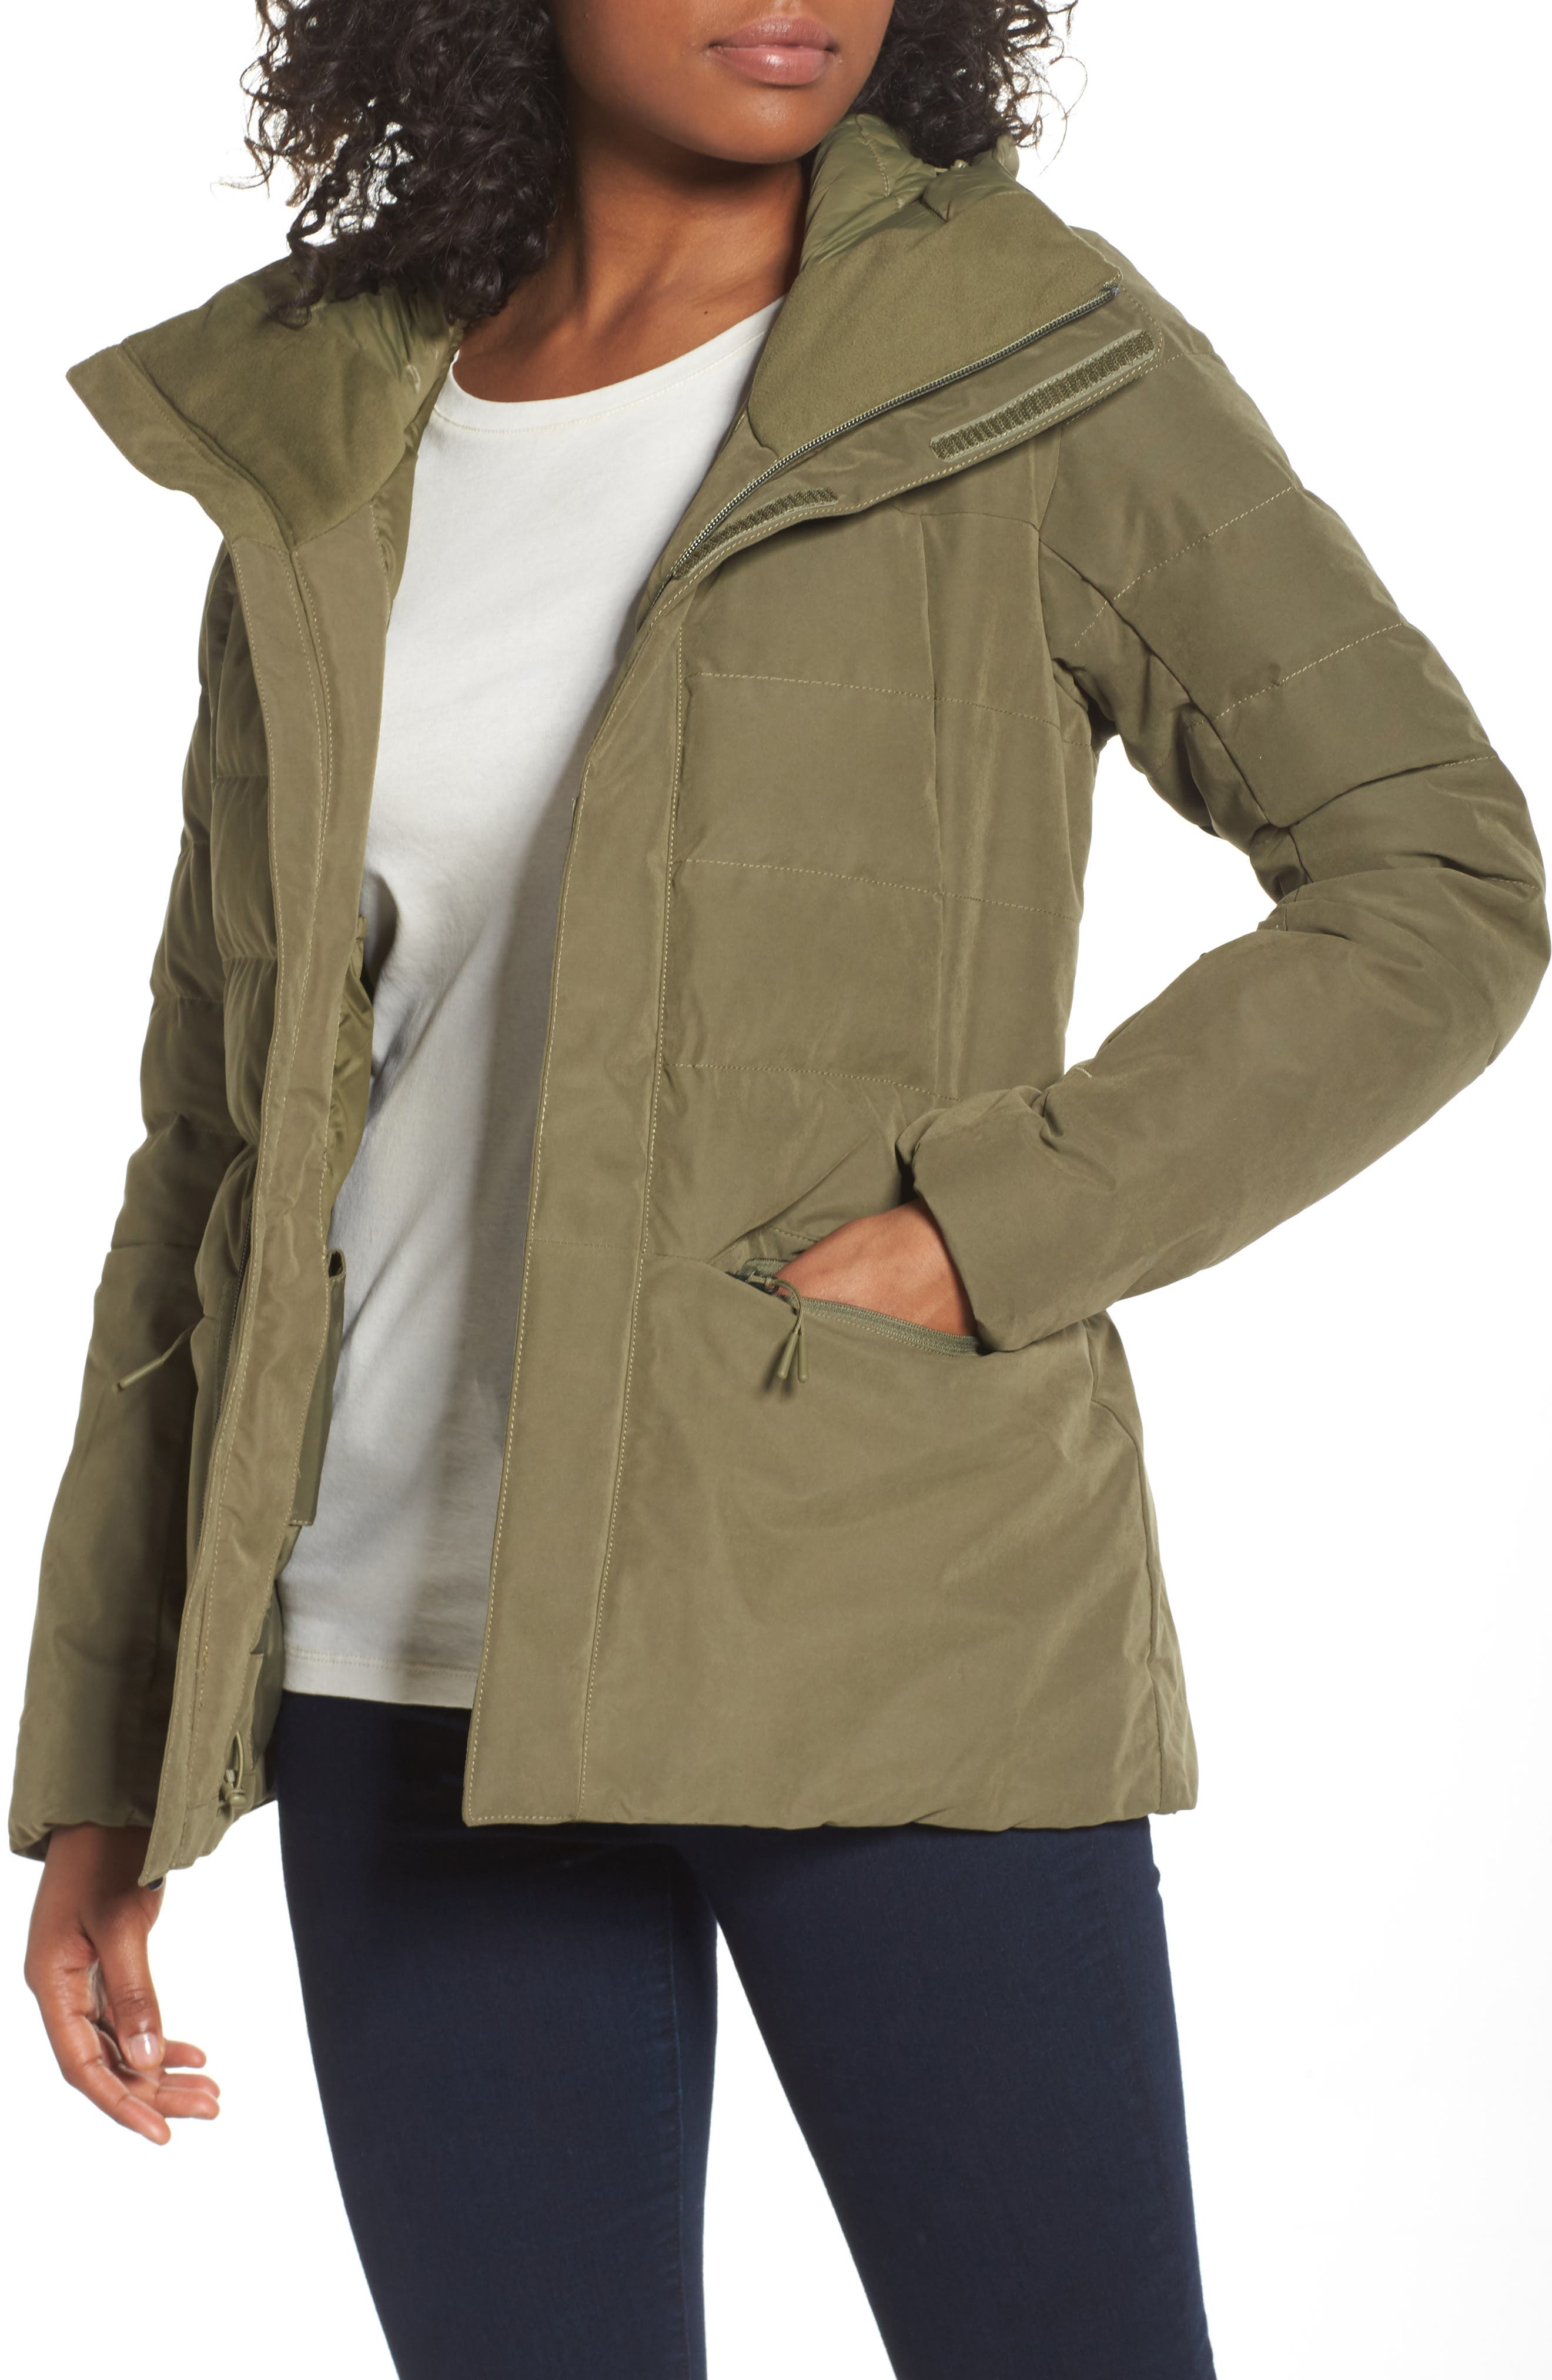 Heavenly Down Jacket,                             Main thumbnail 1, color,                             Burnt Olive Green